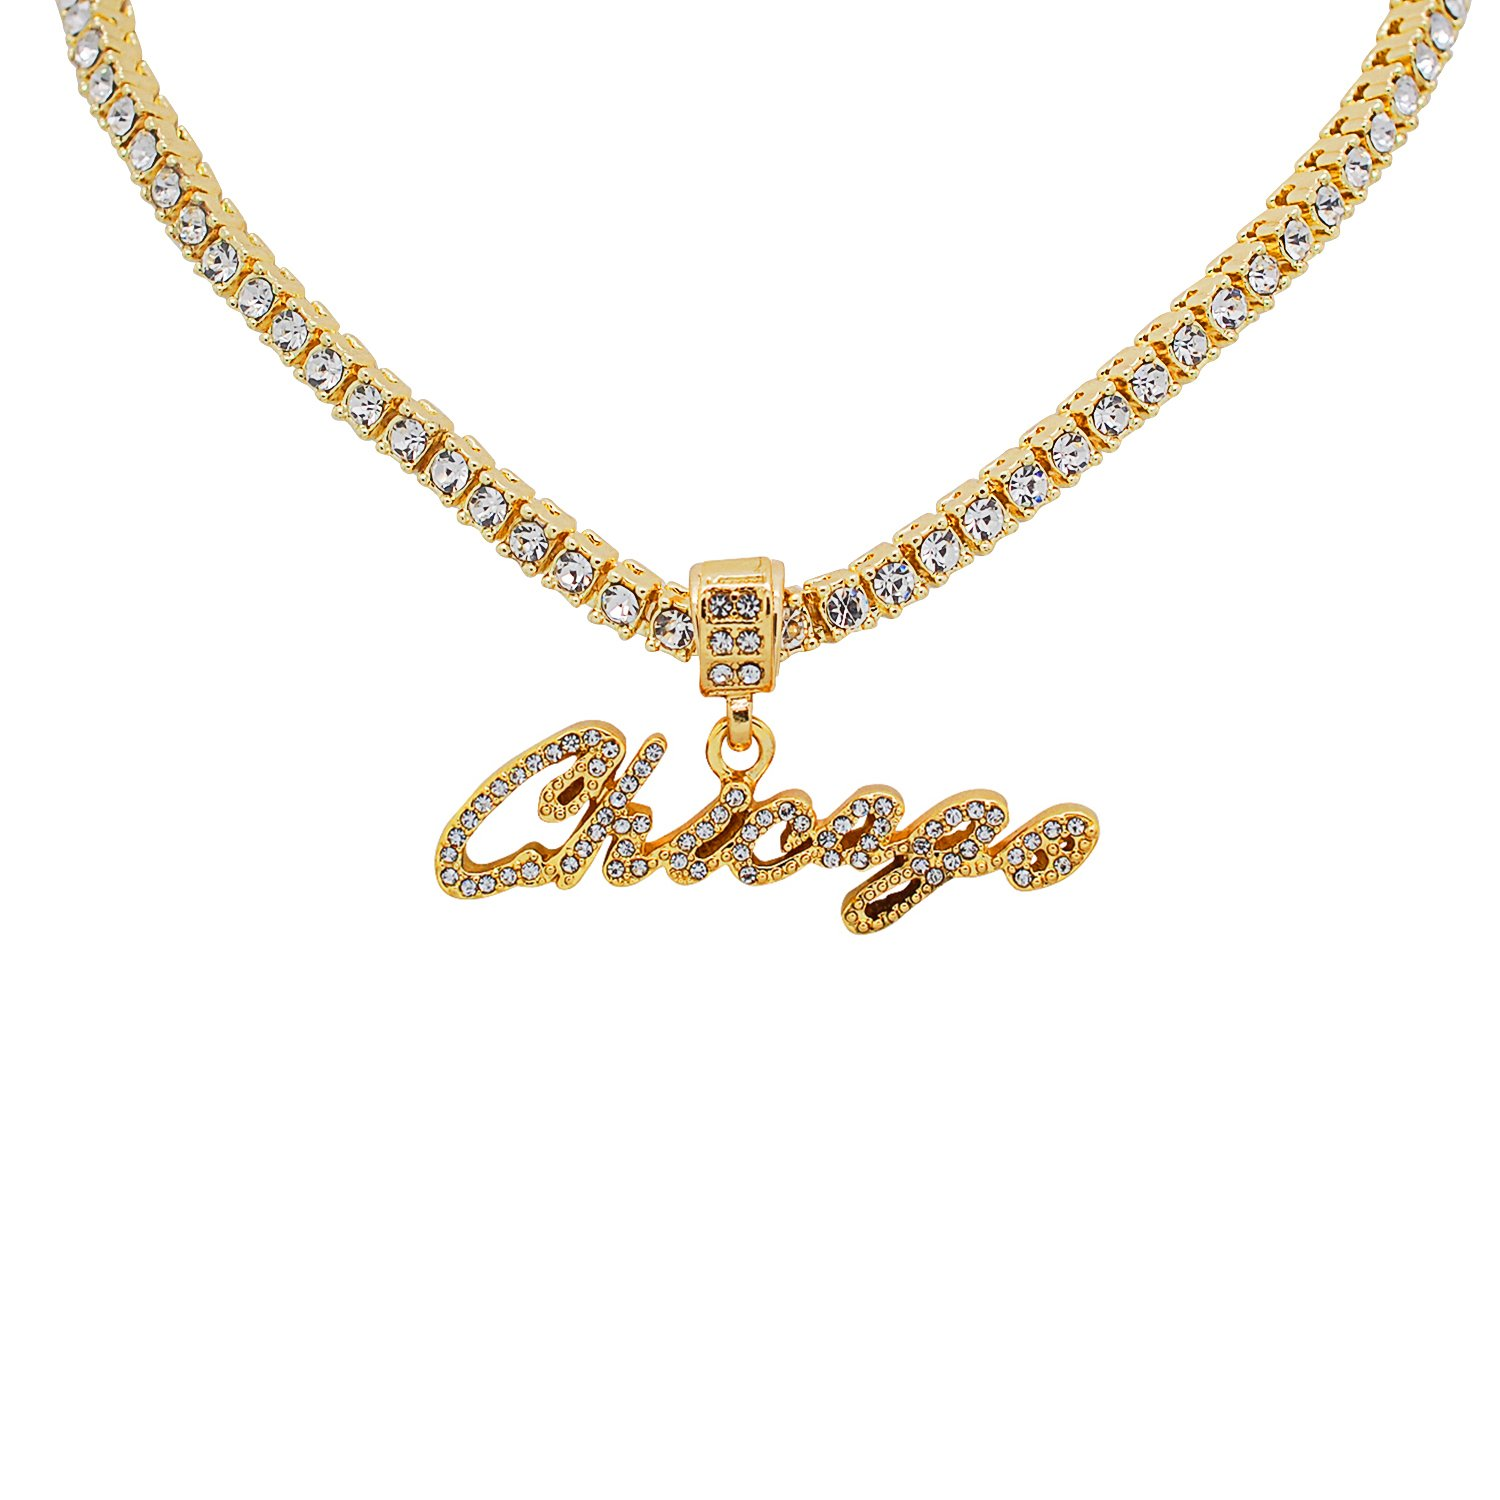 Yellow Gold-Tone Hip Hop Bling CursiveChicago Letter Pendant with 20 Tennis Chain and 24 Rope Chain